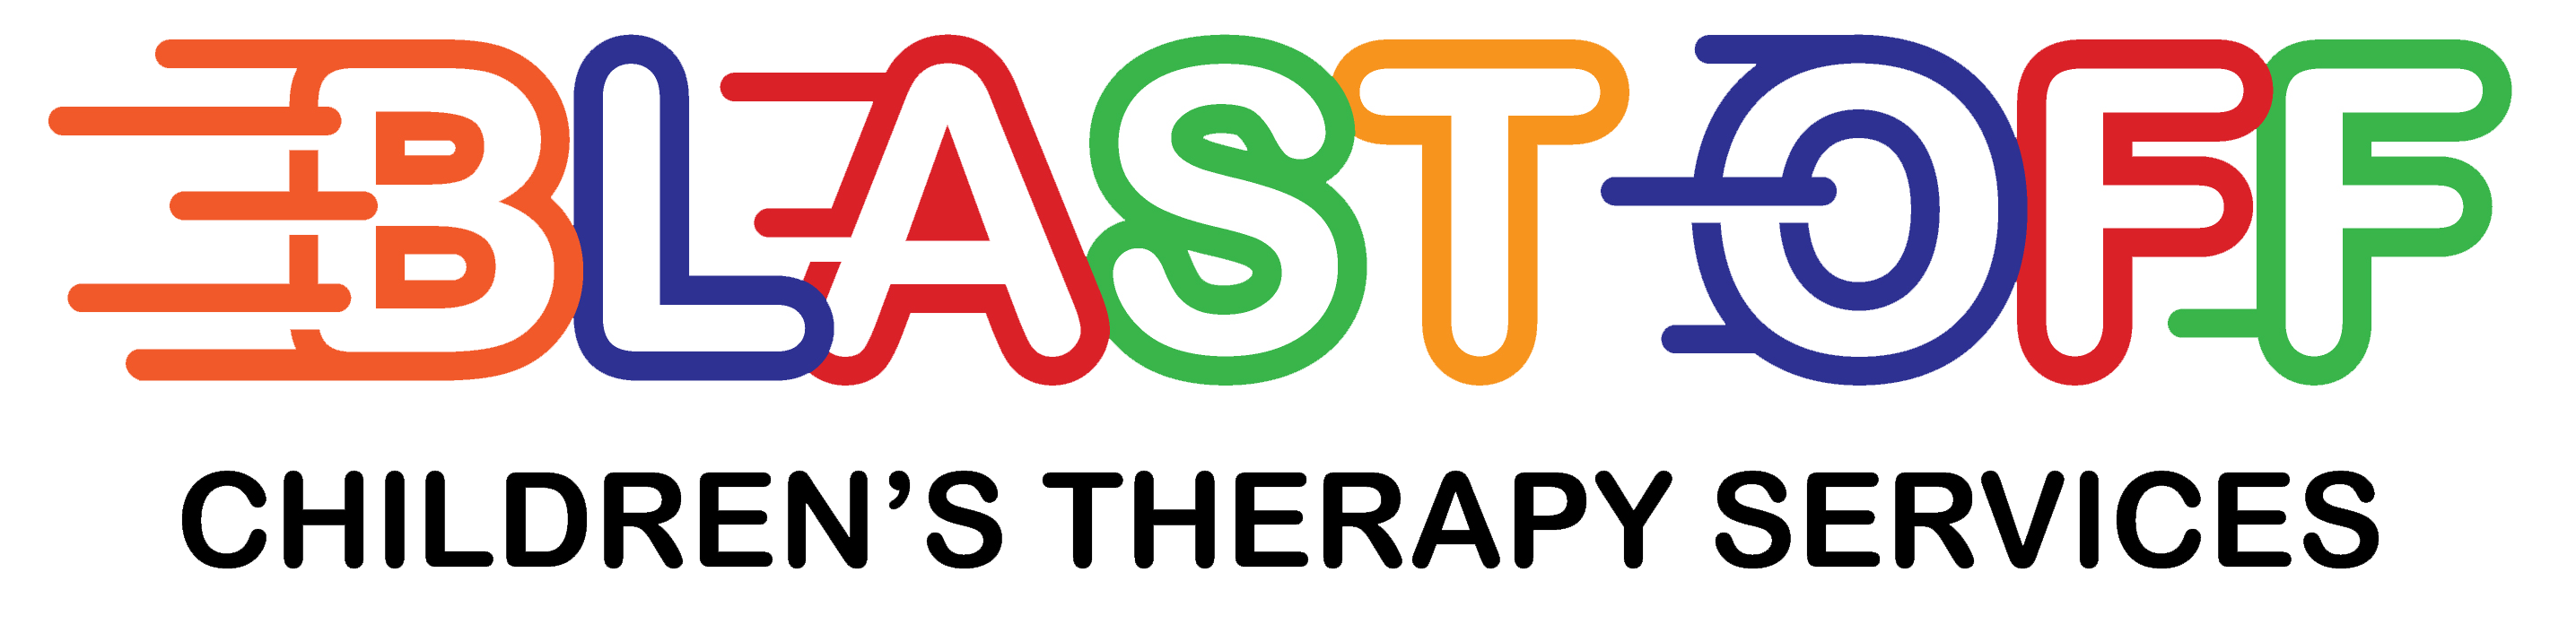 Blast off png. Children s therapy services